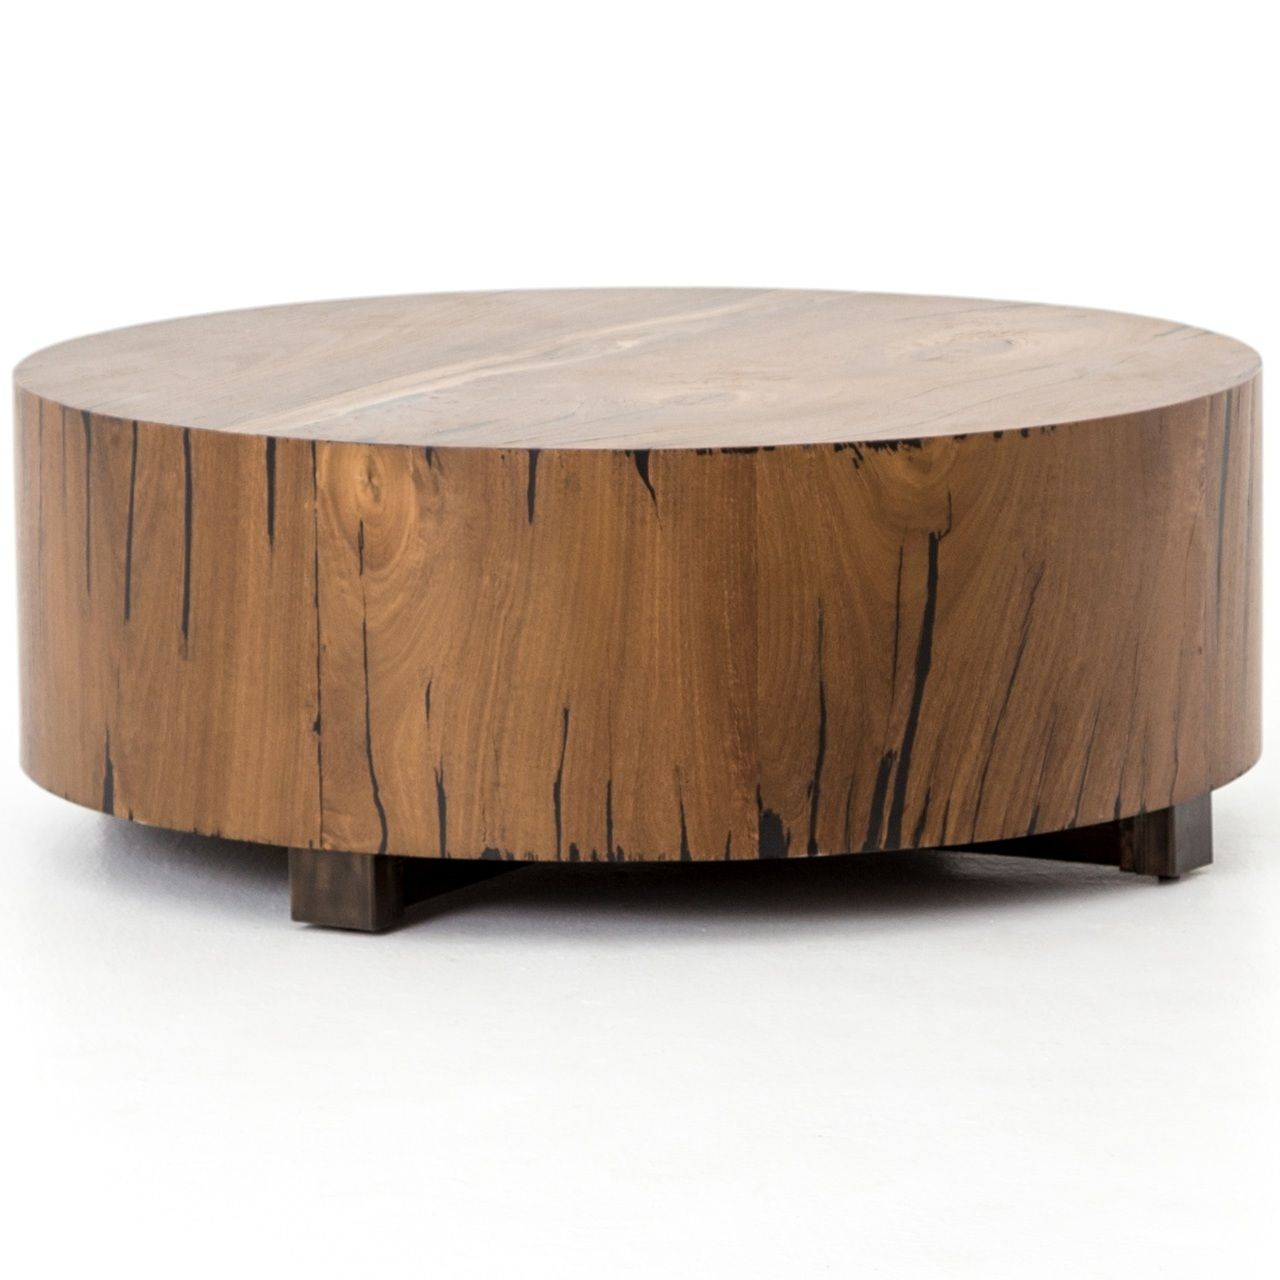 Hudson Round Natural Wood Block Coffee Table Natural Wood Coffee Table Coffee Table Wood Round Wood Coffee Table